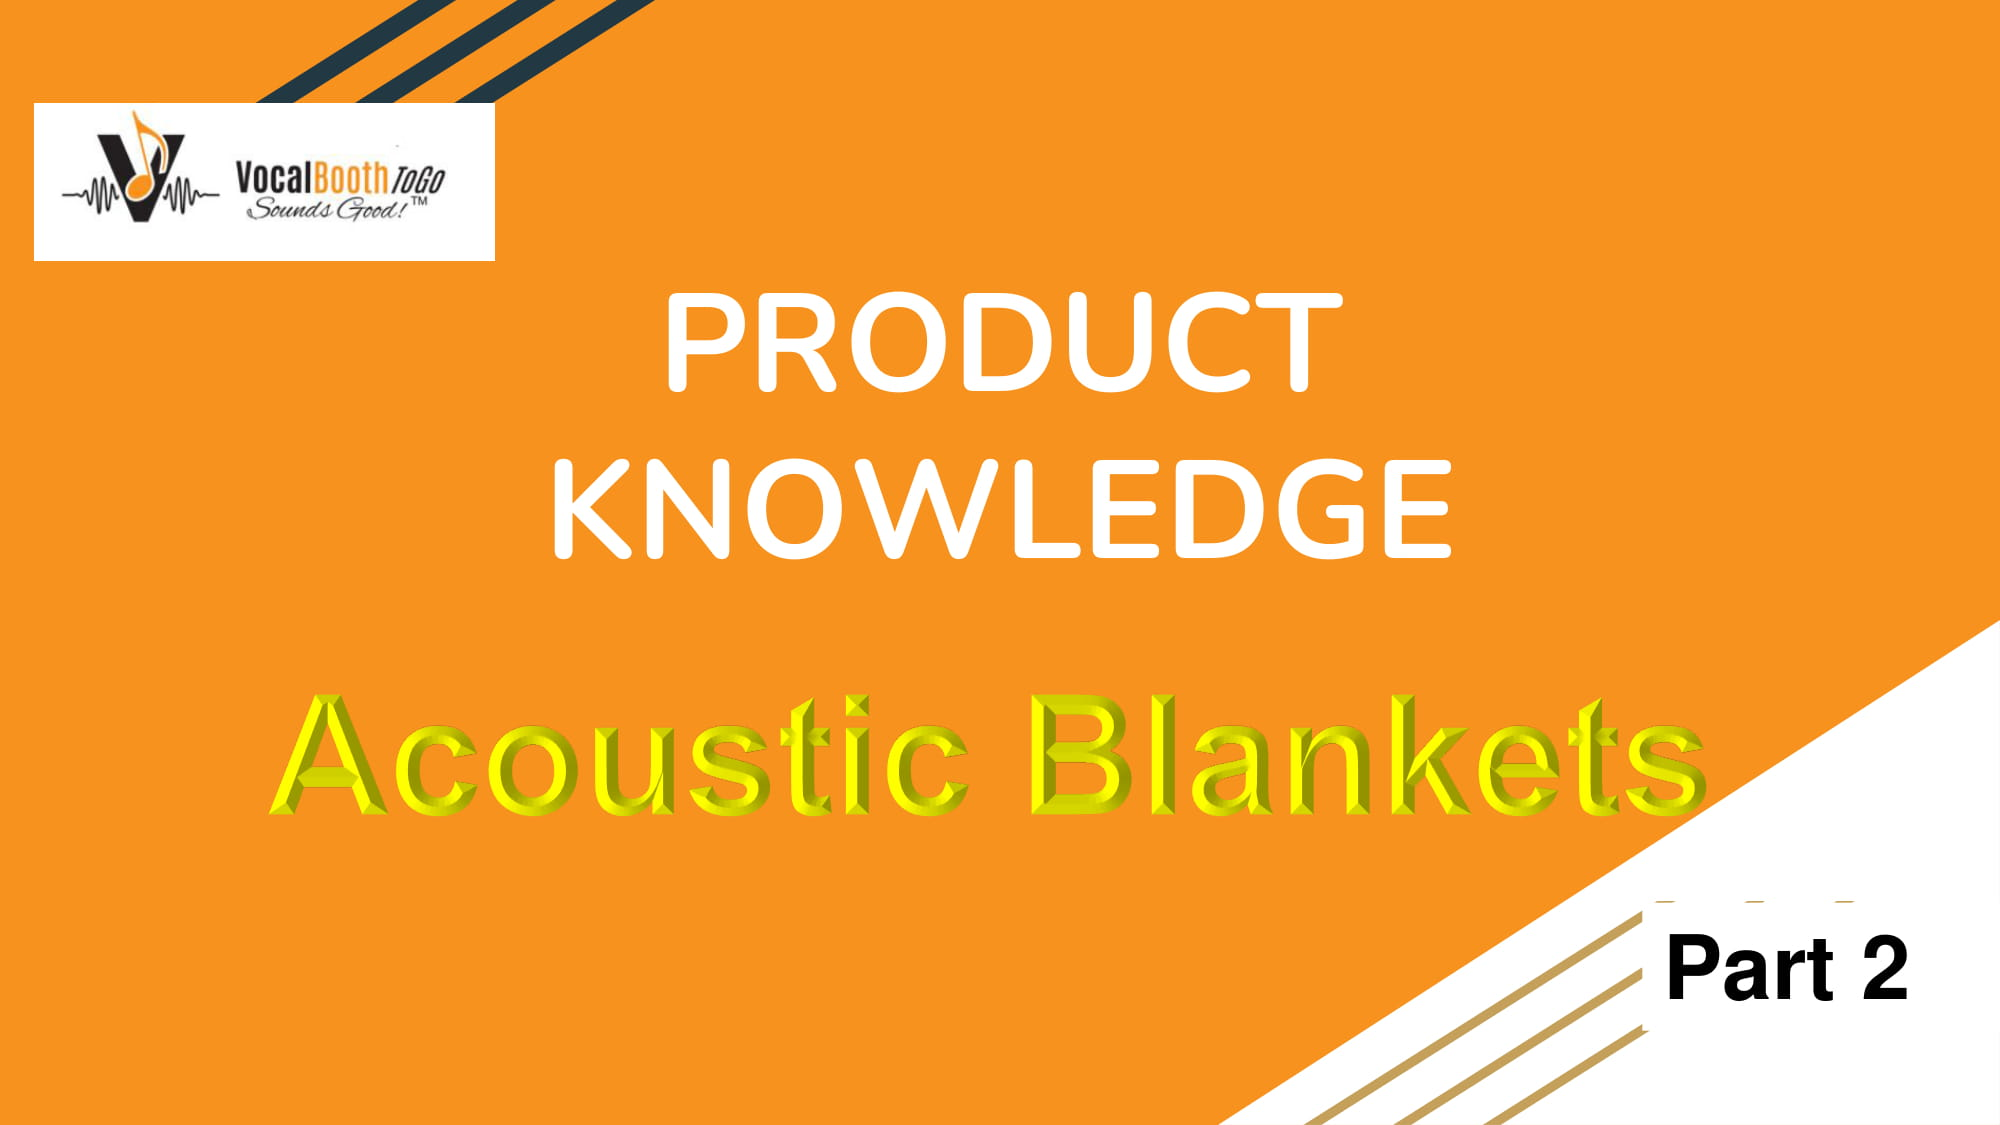 Product Knowlege Acoustic Blankets